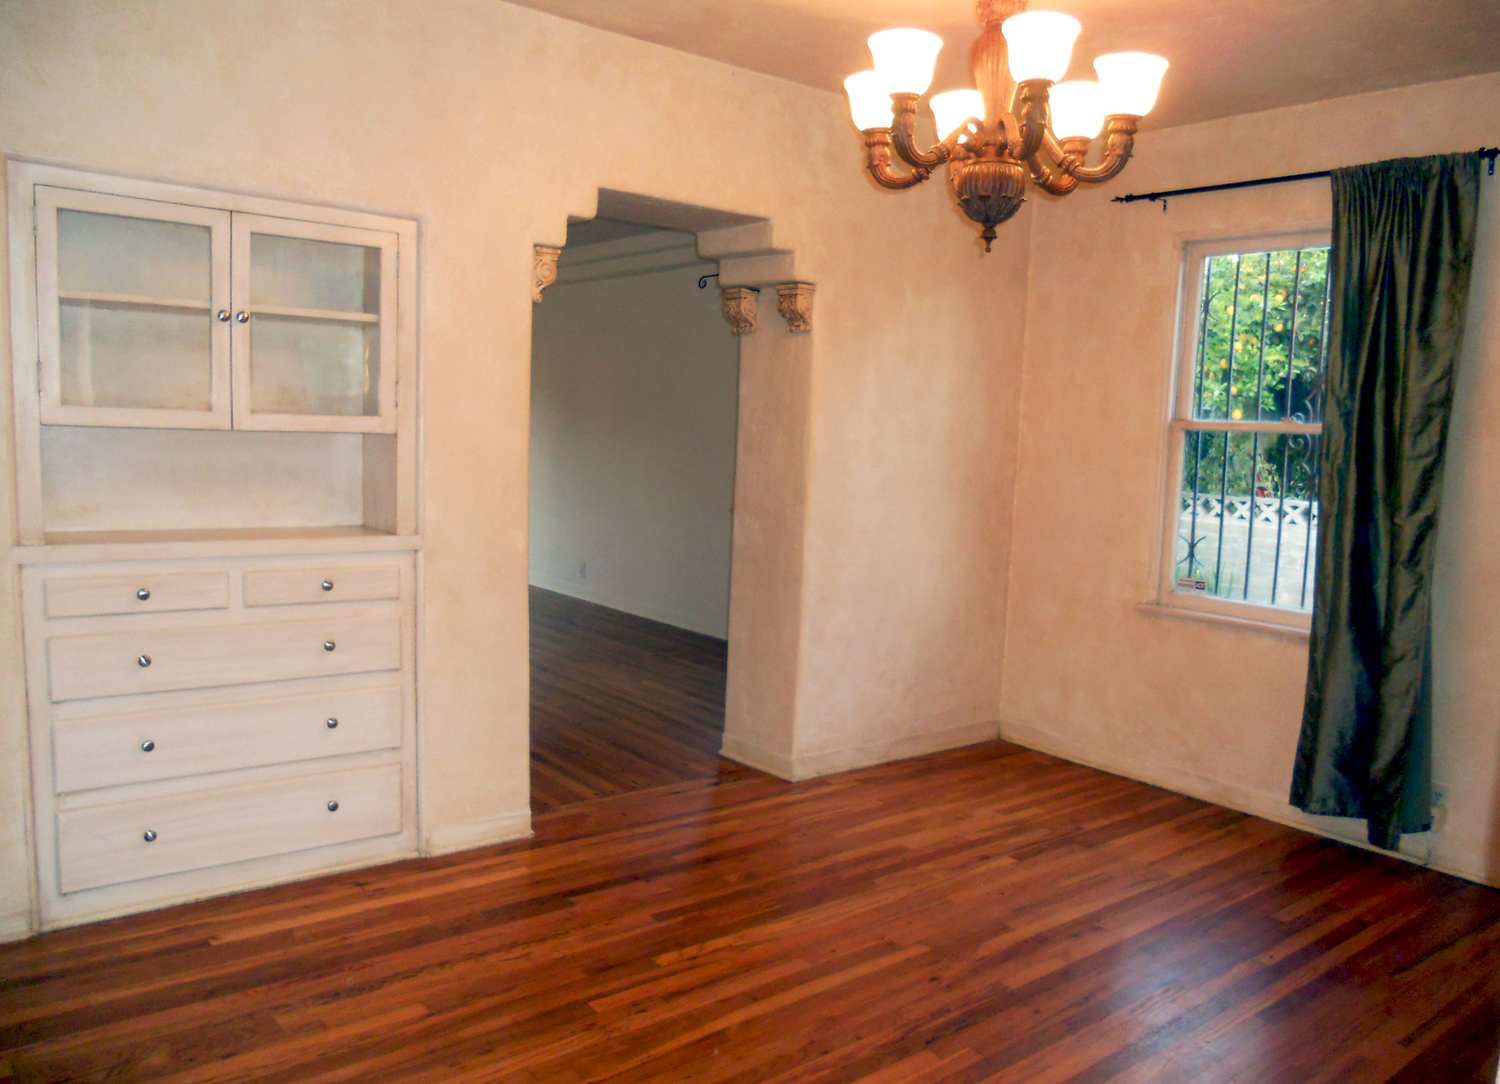 Formal dining room with built-in hutch and original hardwood floors.